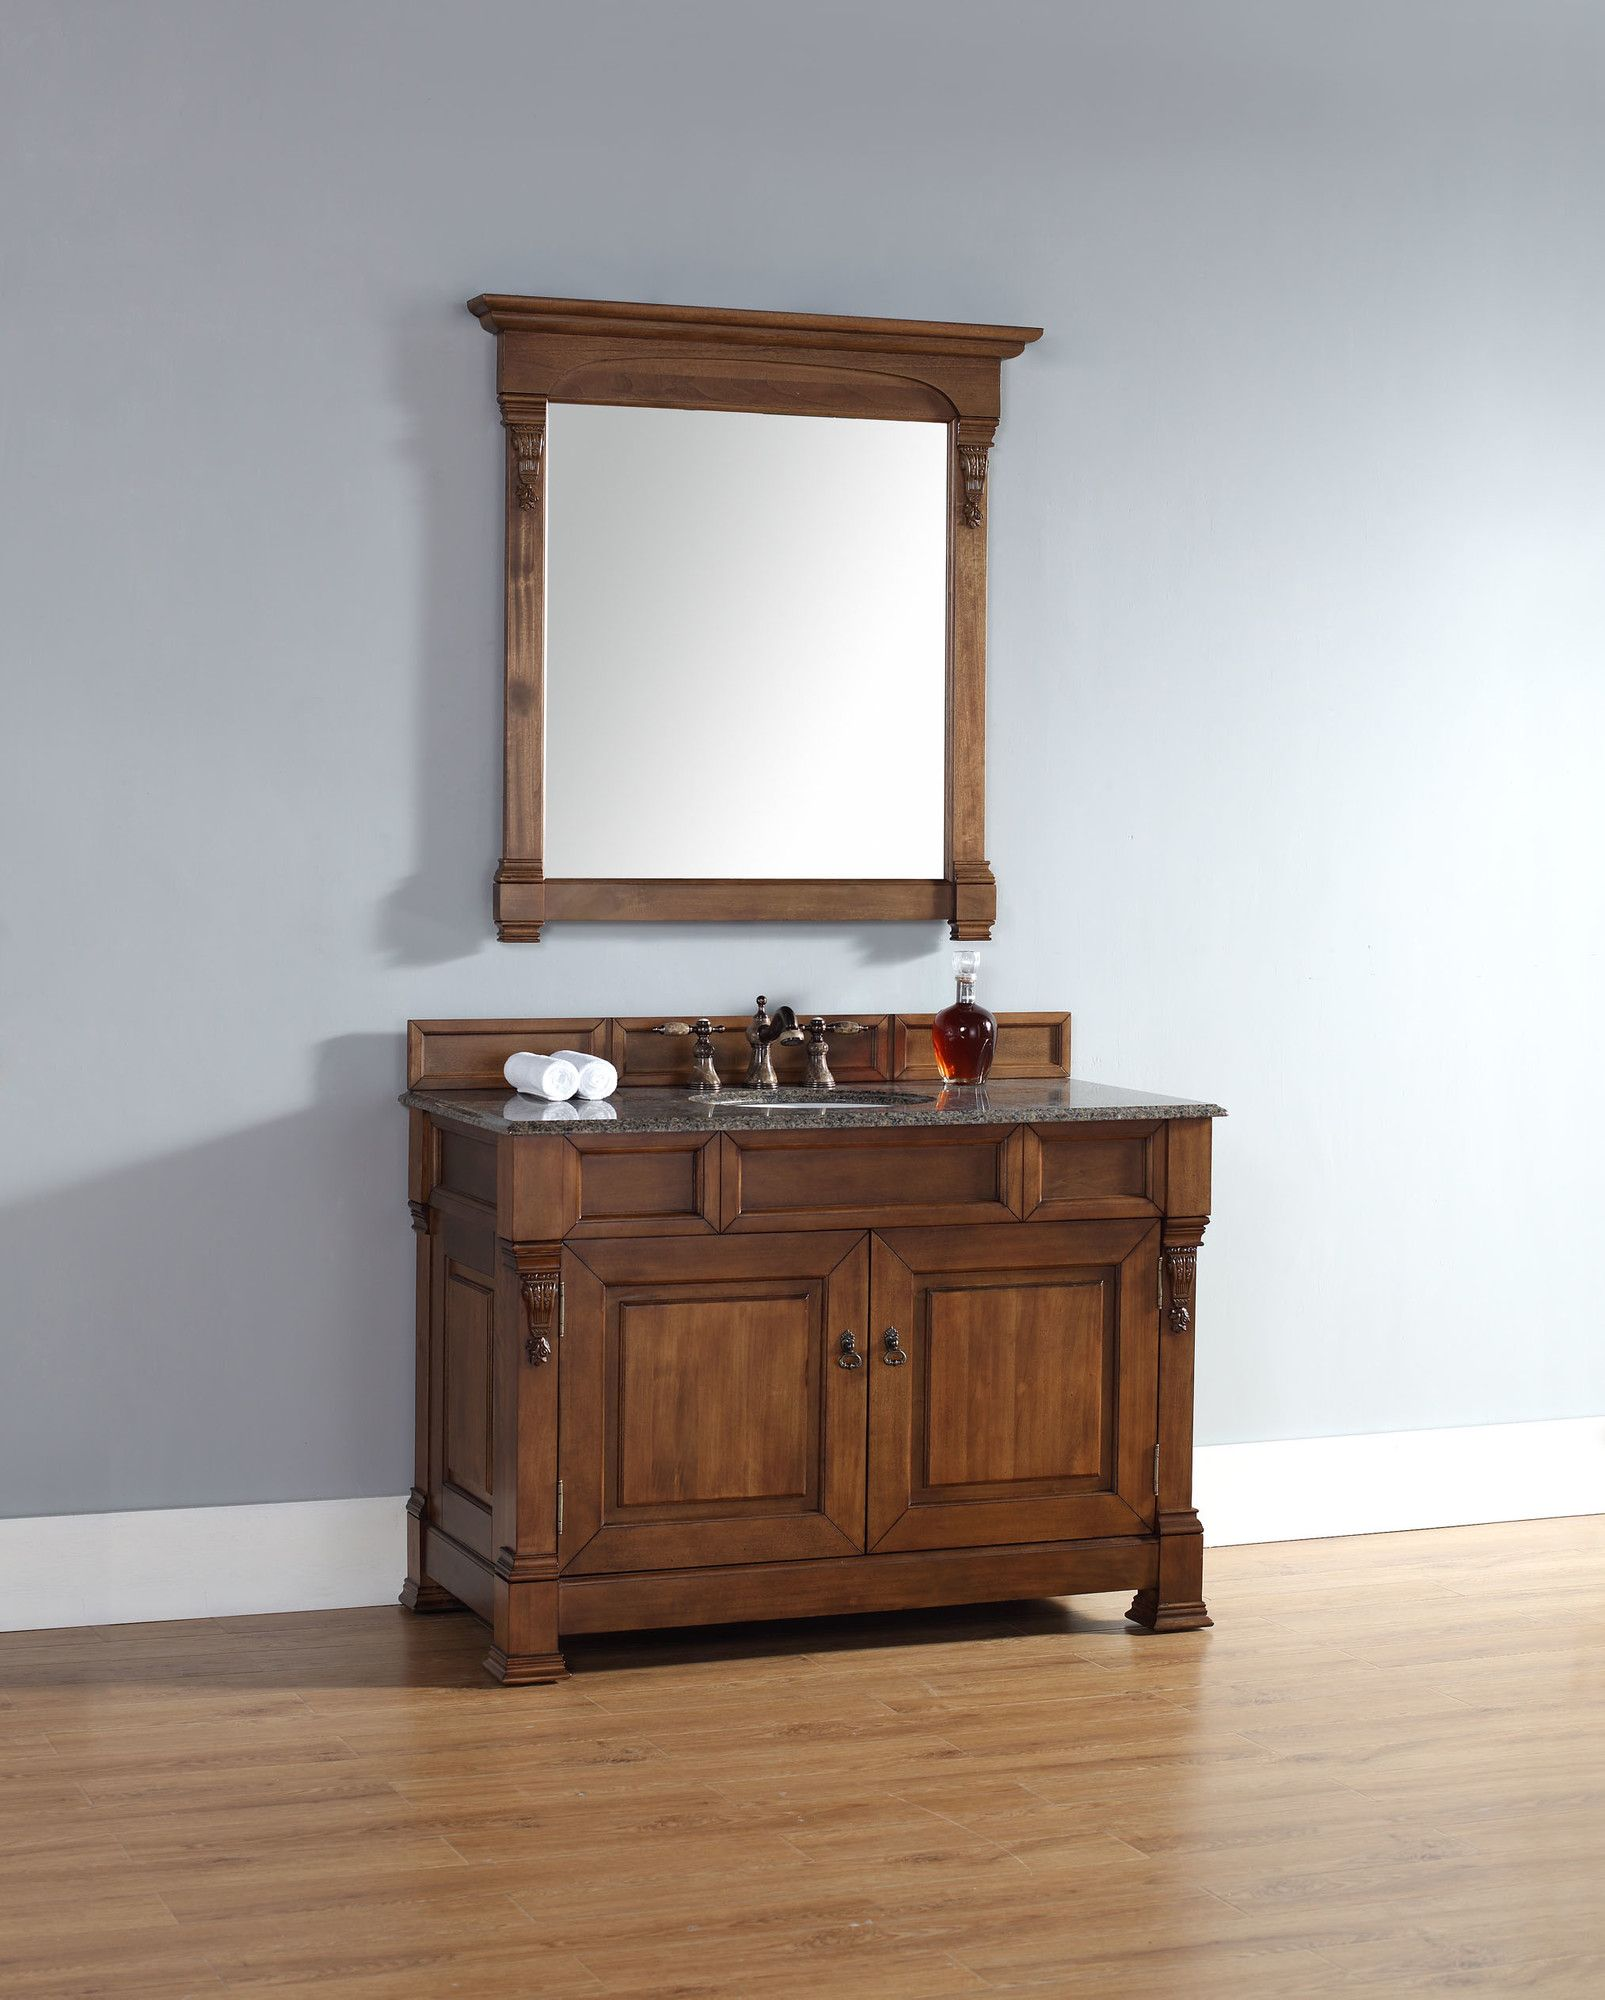 vanity full floating vanitiesh inch bedroom furniture pictures customh of set antique wayfair bathro grey lights single with best sinks for in ideas mesmerizing bathroom size vanities decoration shelf cheap inspirational march makeup bottom awesome stunning sink